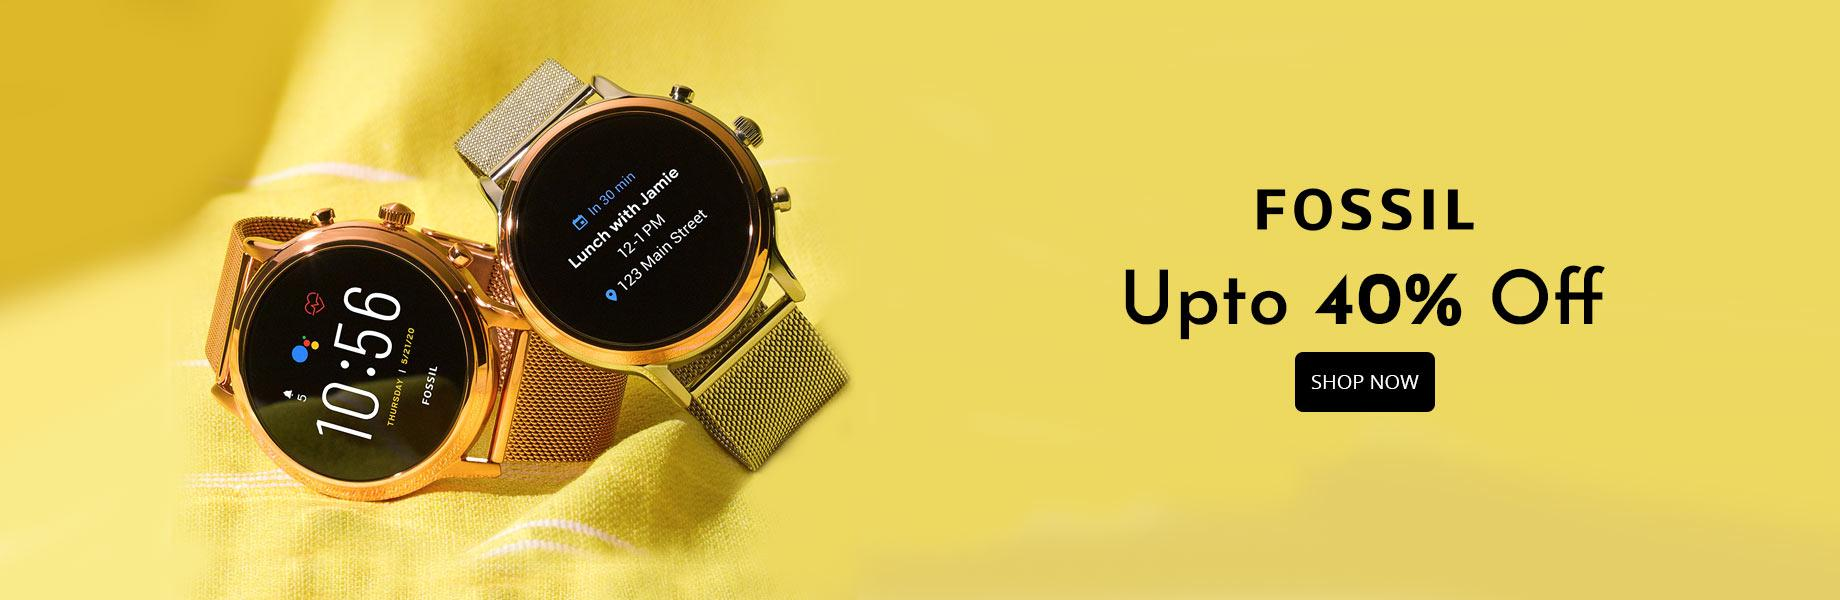 Home-PG-Watch-Brands-Static-Fossil-Web.jpg